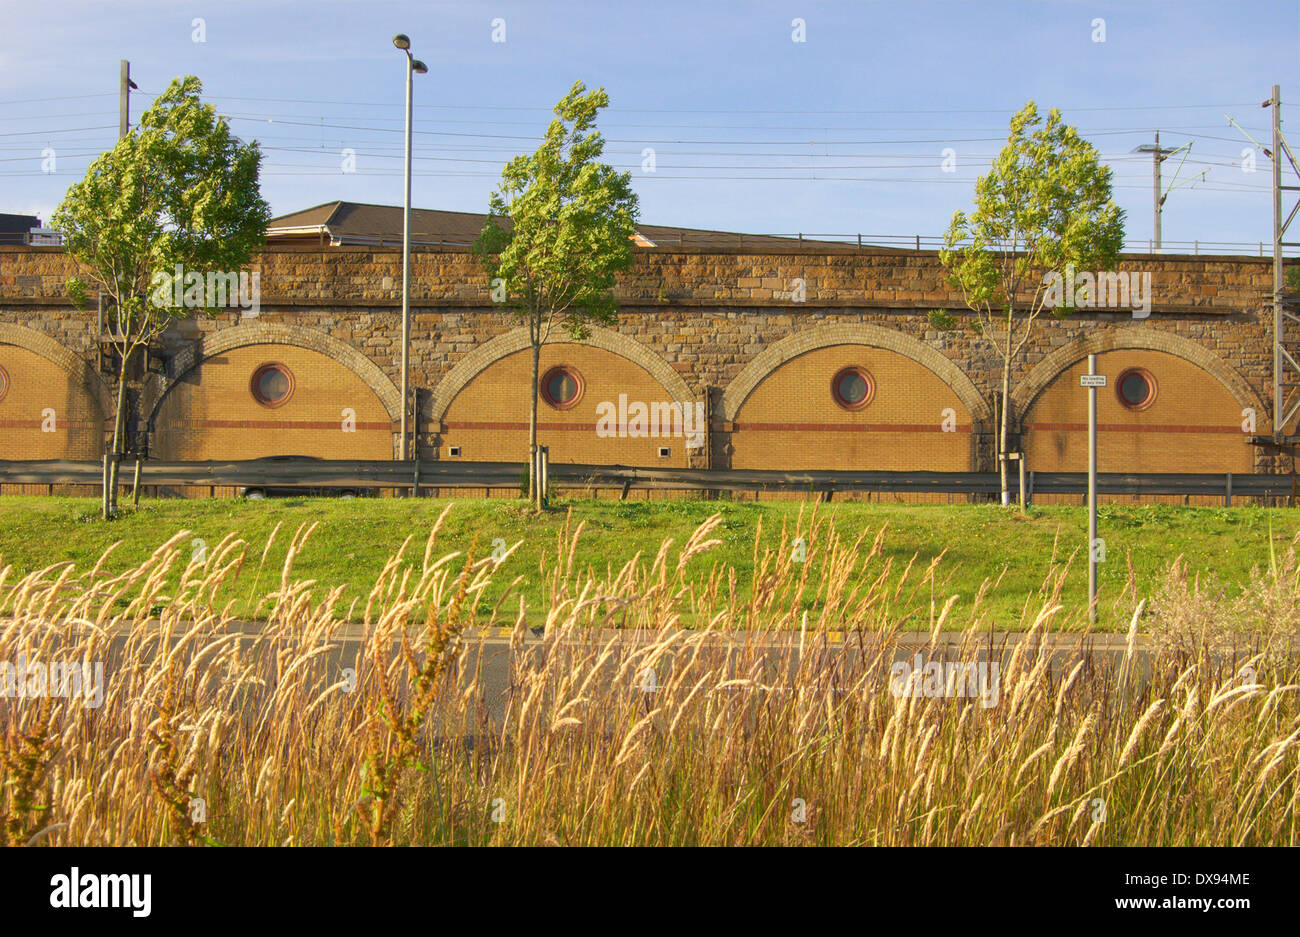 Railway arches next to the Clydeside Expressway near Partick in Glasgow, Scotland - Stock Image